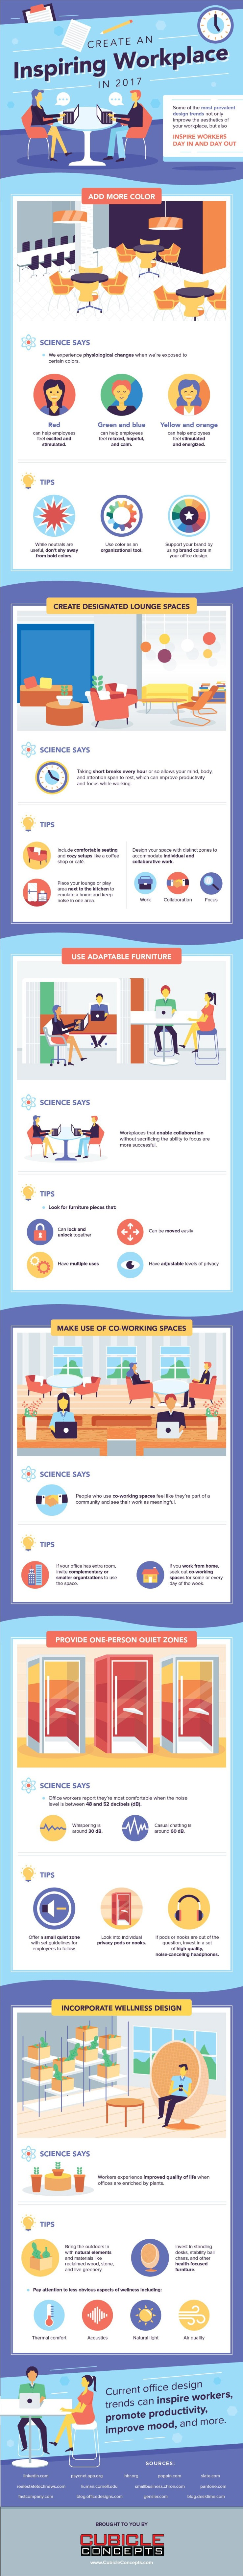 6 Design Tips to Create an Inspiring Office Space